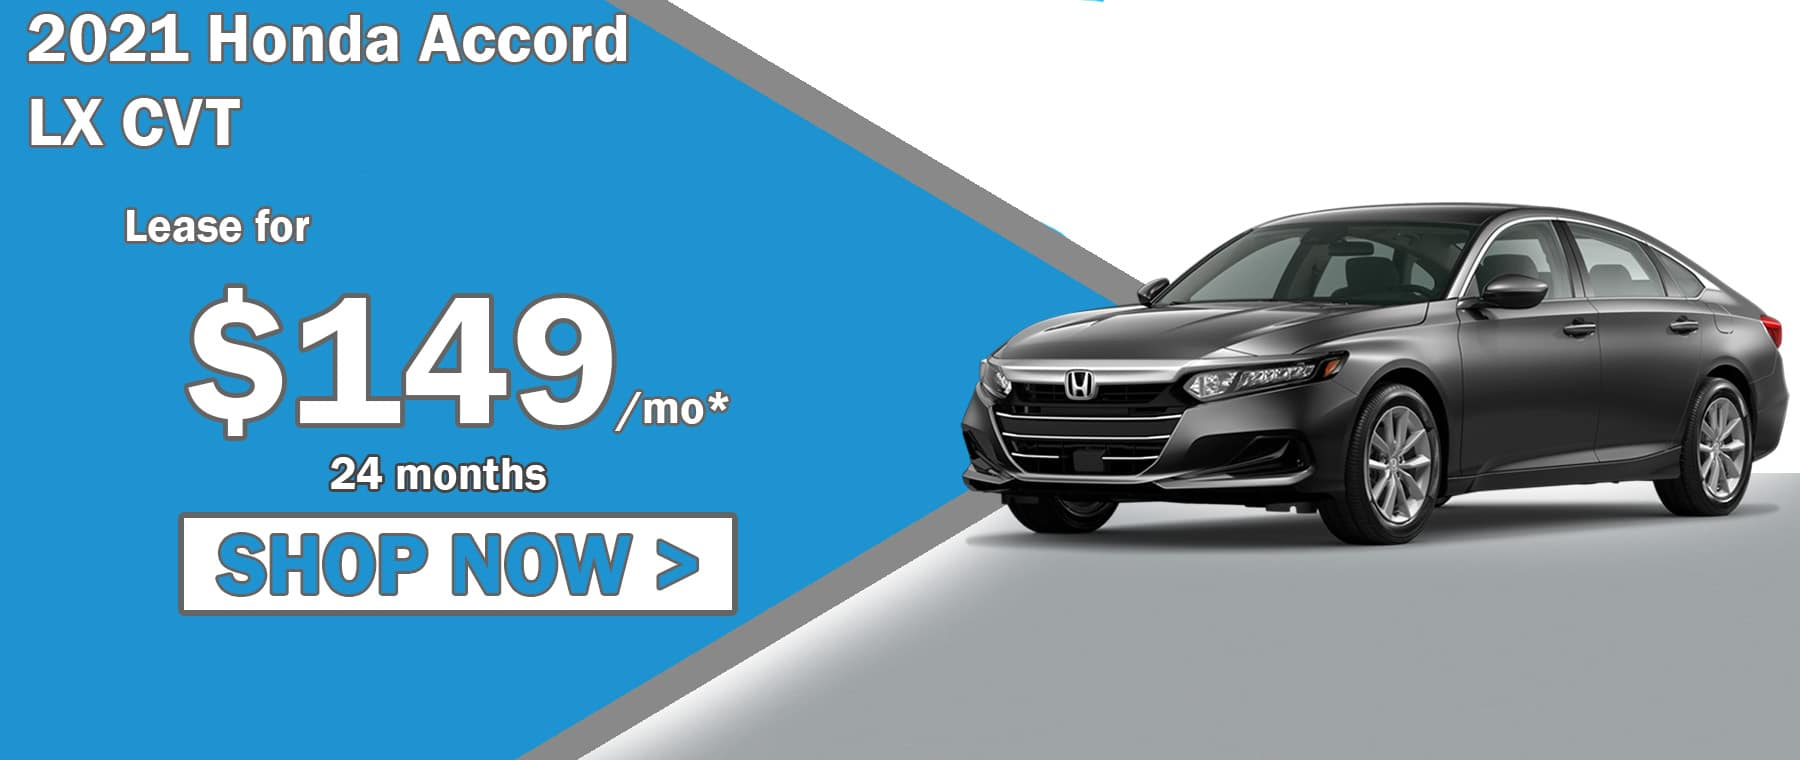 March 2021 Accord Lease Final